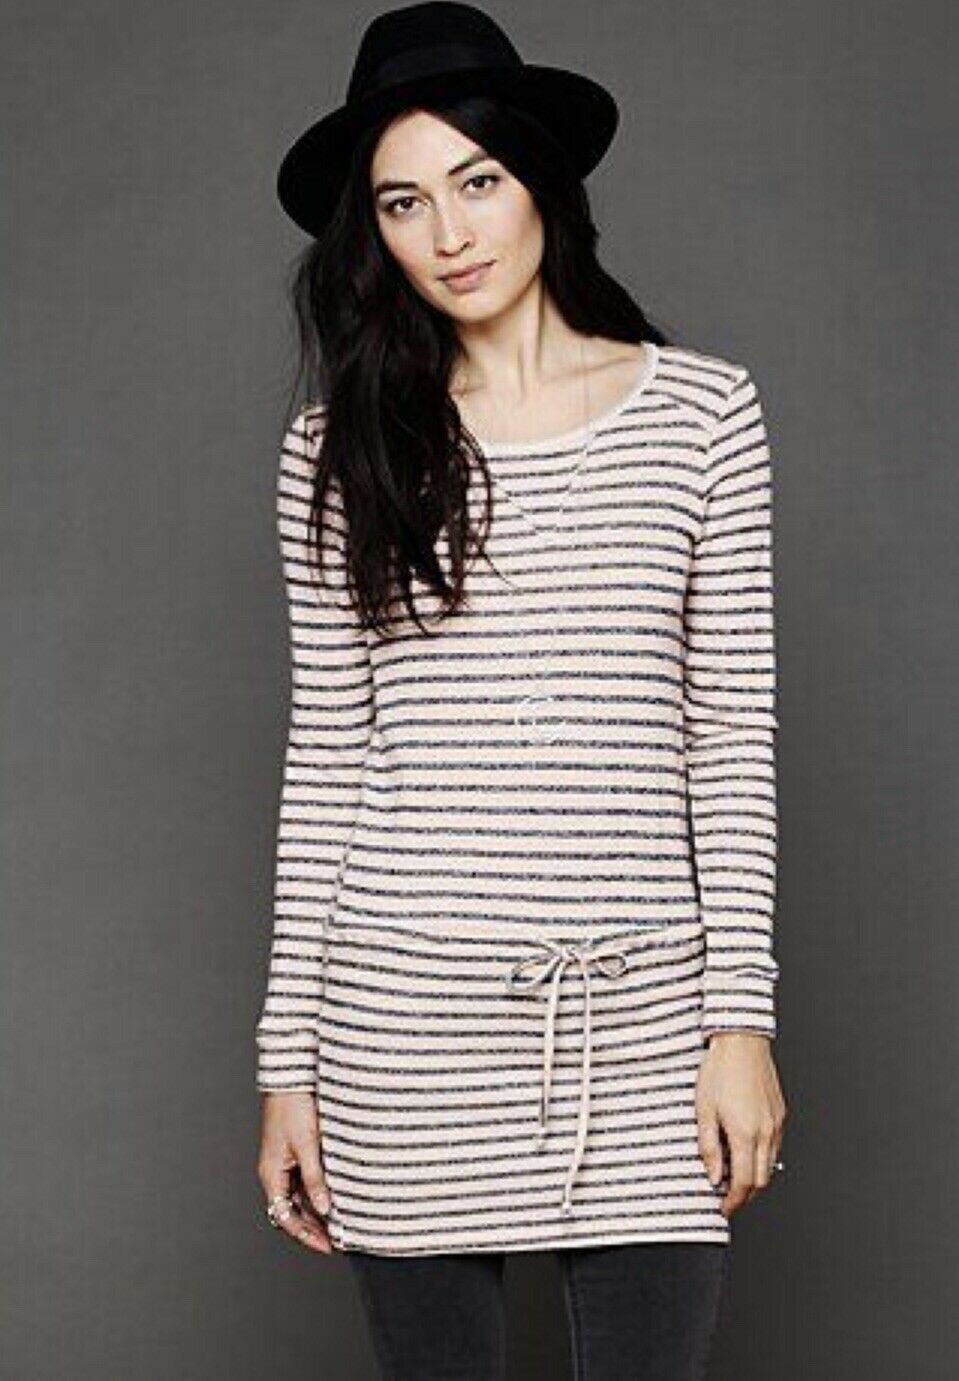 NEW NIGHTCAP X FREE PEOPLE Sz 1 DUTCH STRIPE TERRY DRAWSTRING SWEATSHIRT DRESS